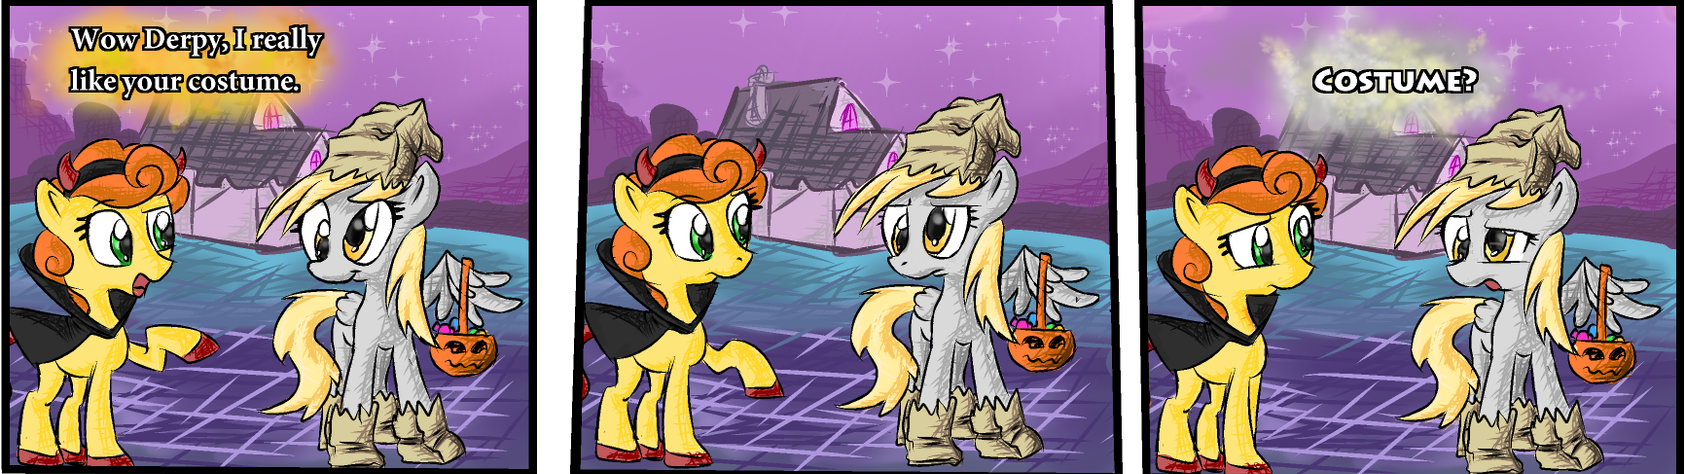 The best costume by Supersheep64